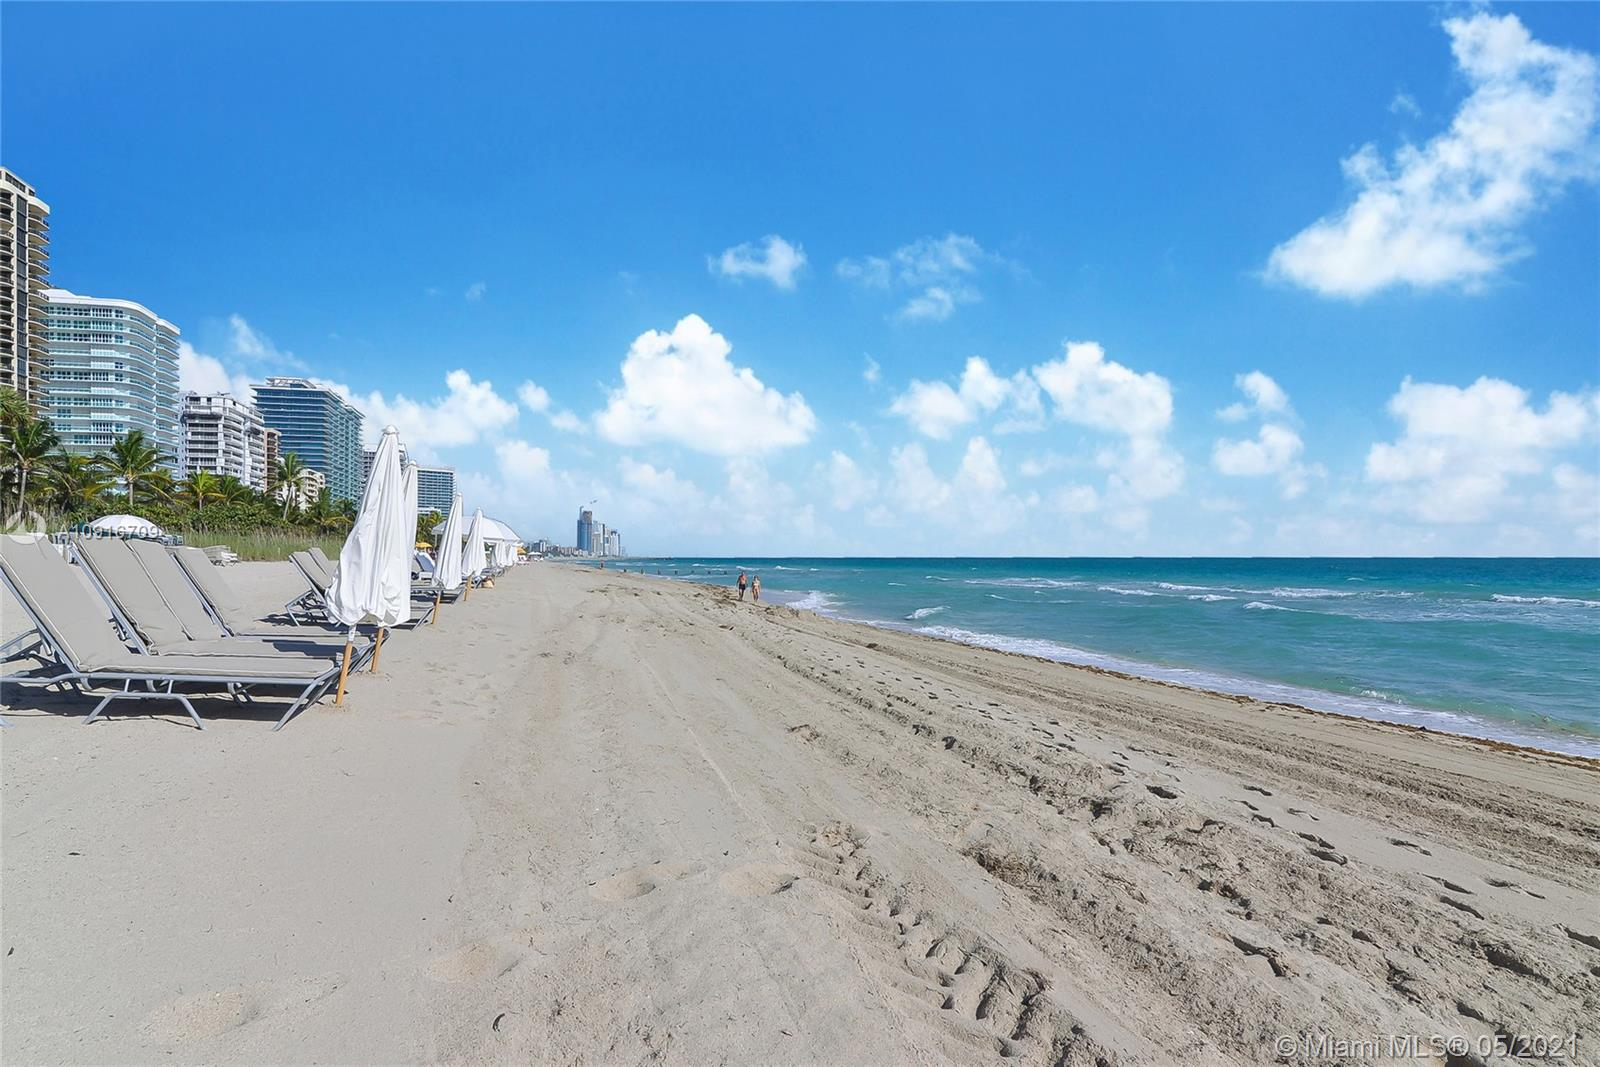 Photo of 9801 Collins Ave #11B Direct Ocean, Bal Harbour, Florida, 33154 - Balmoral from the ocean